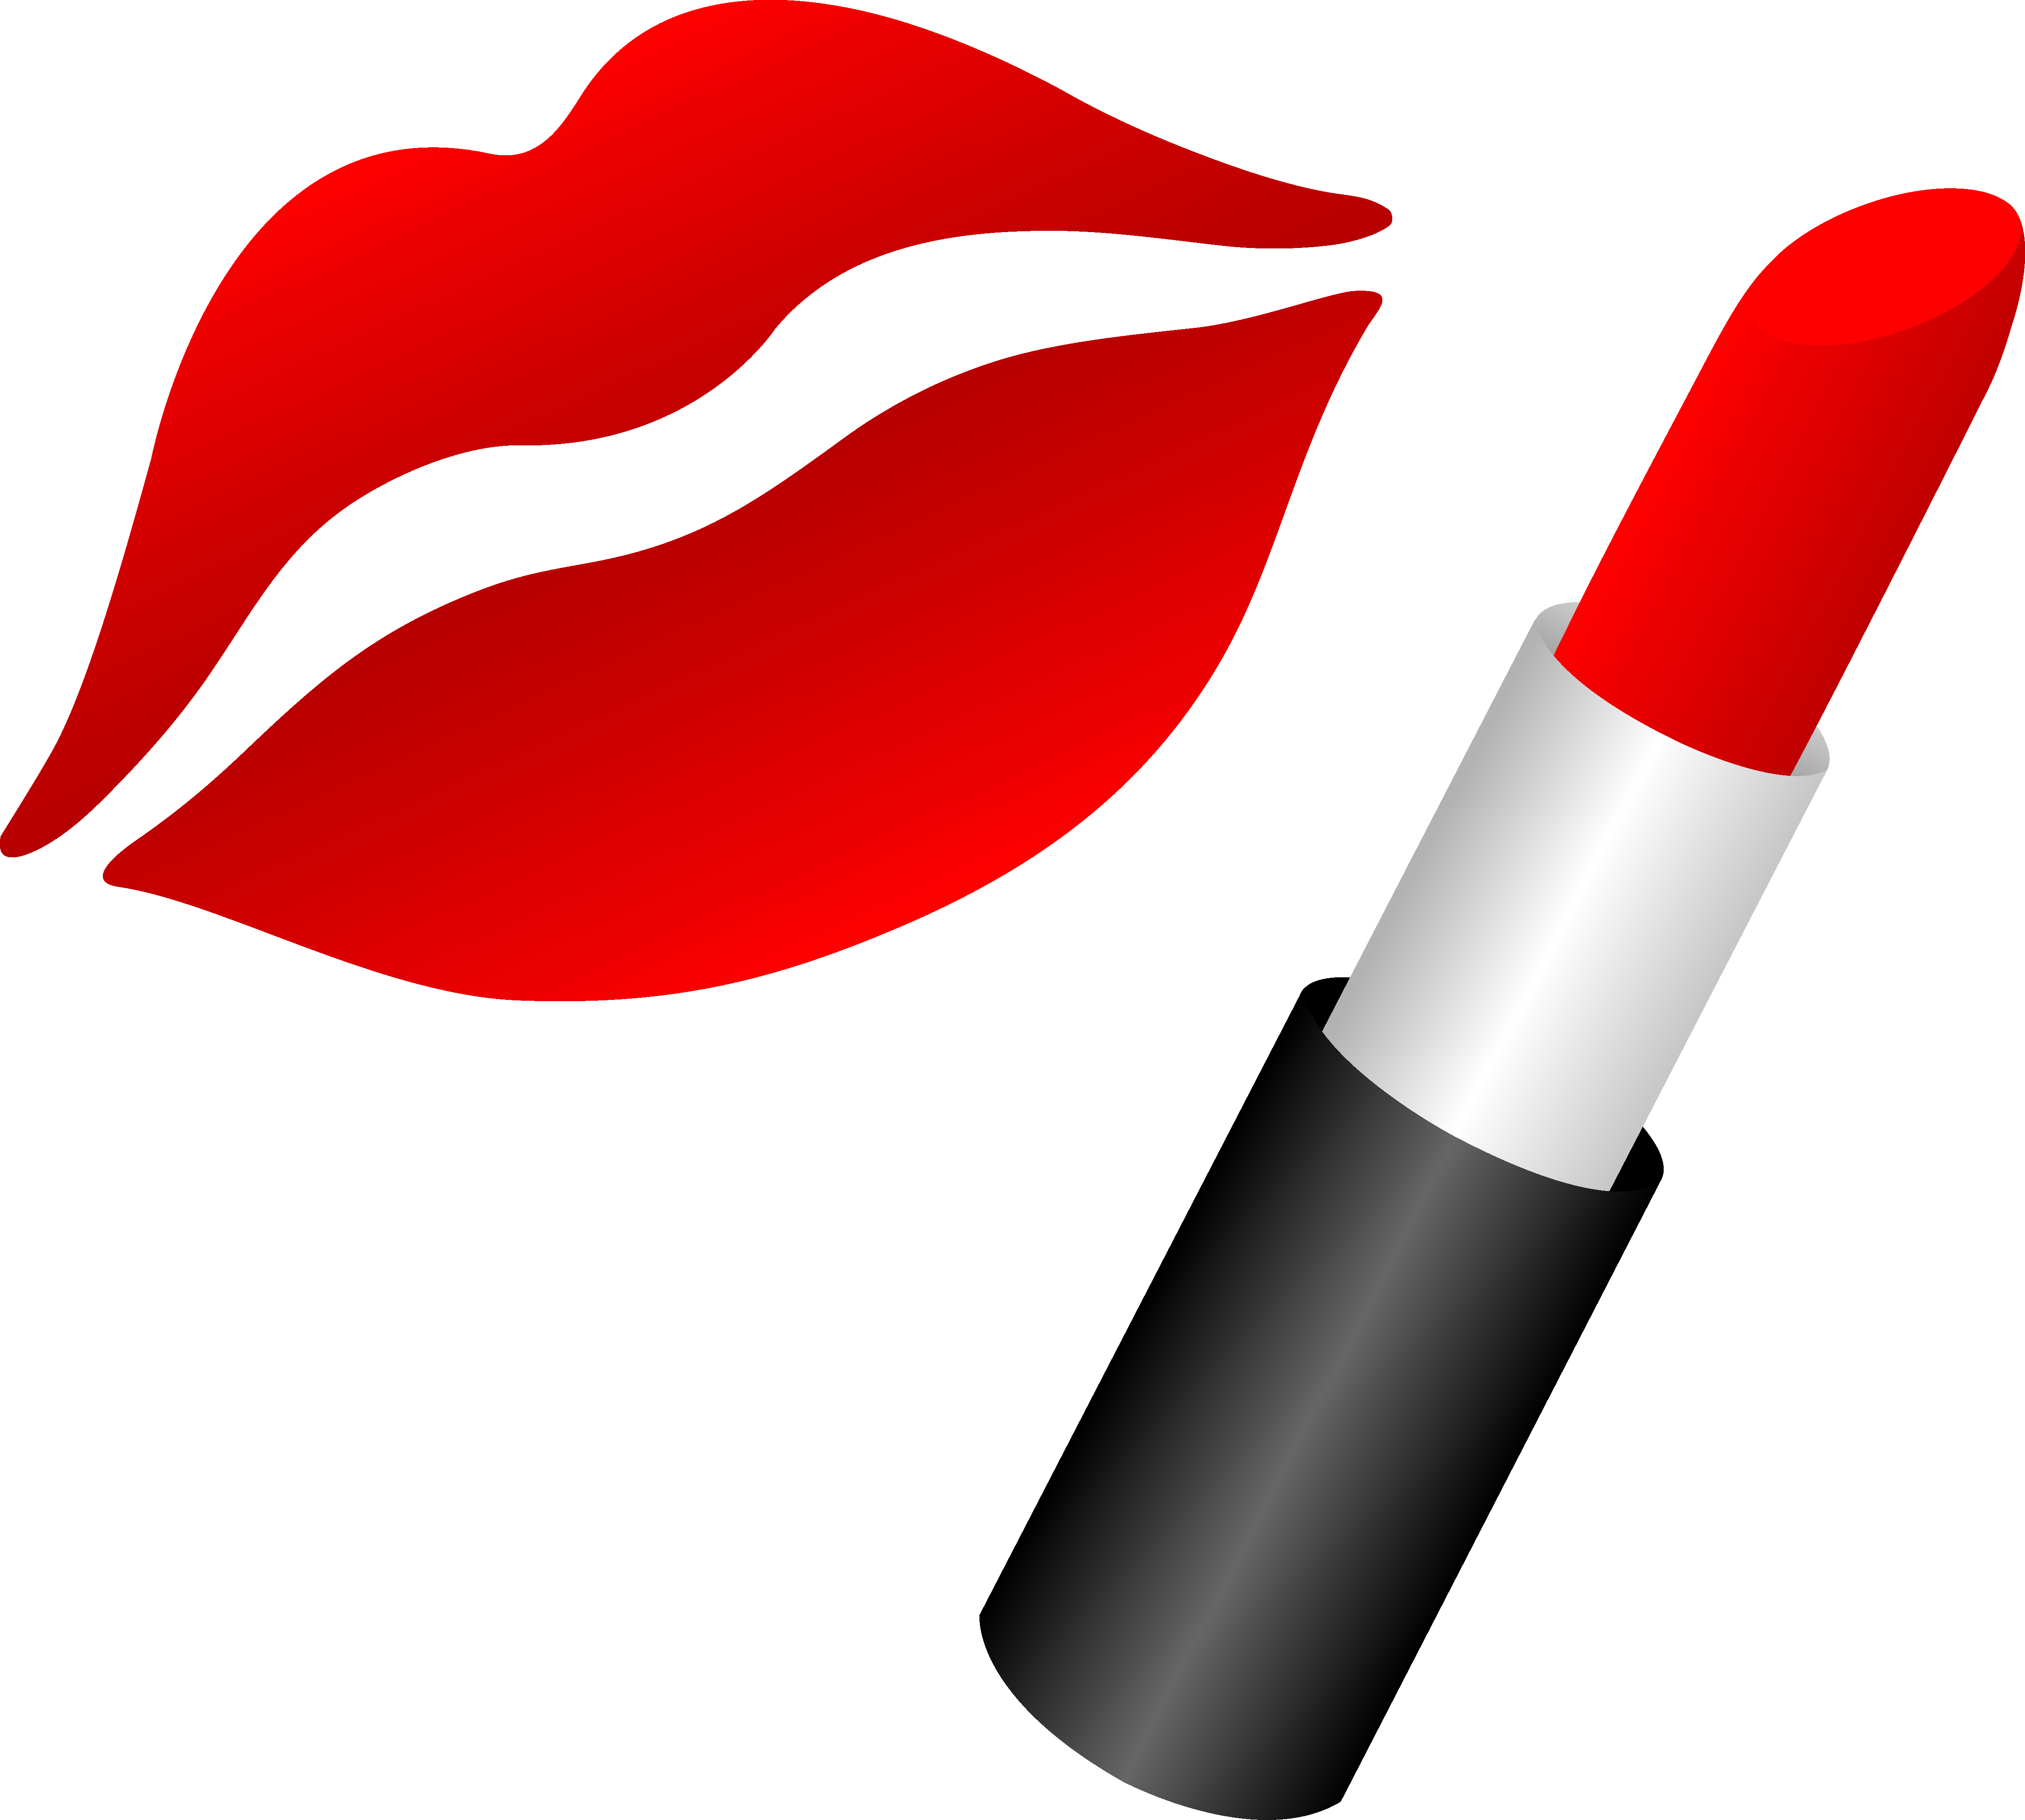 vector download Lip clipart. Lips with red lipstick.